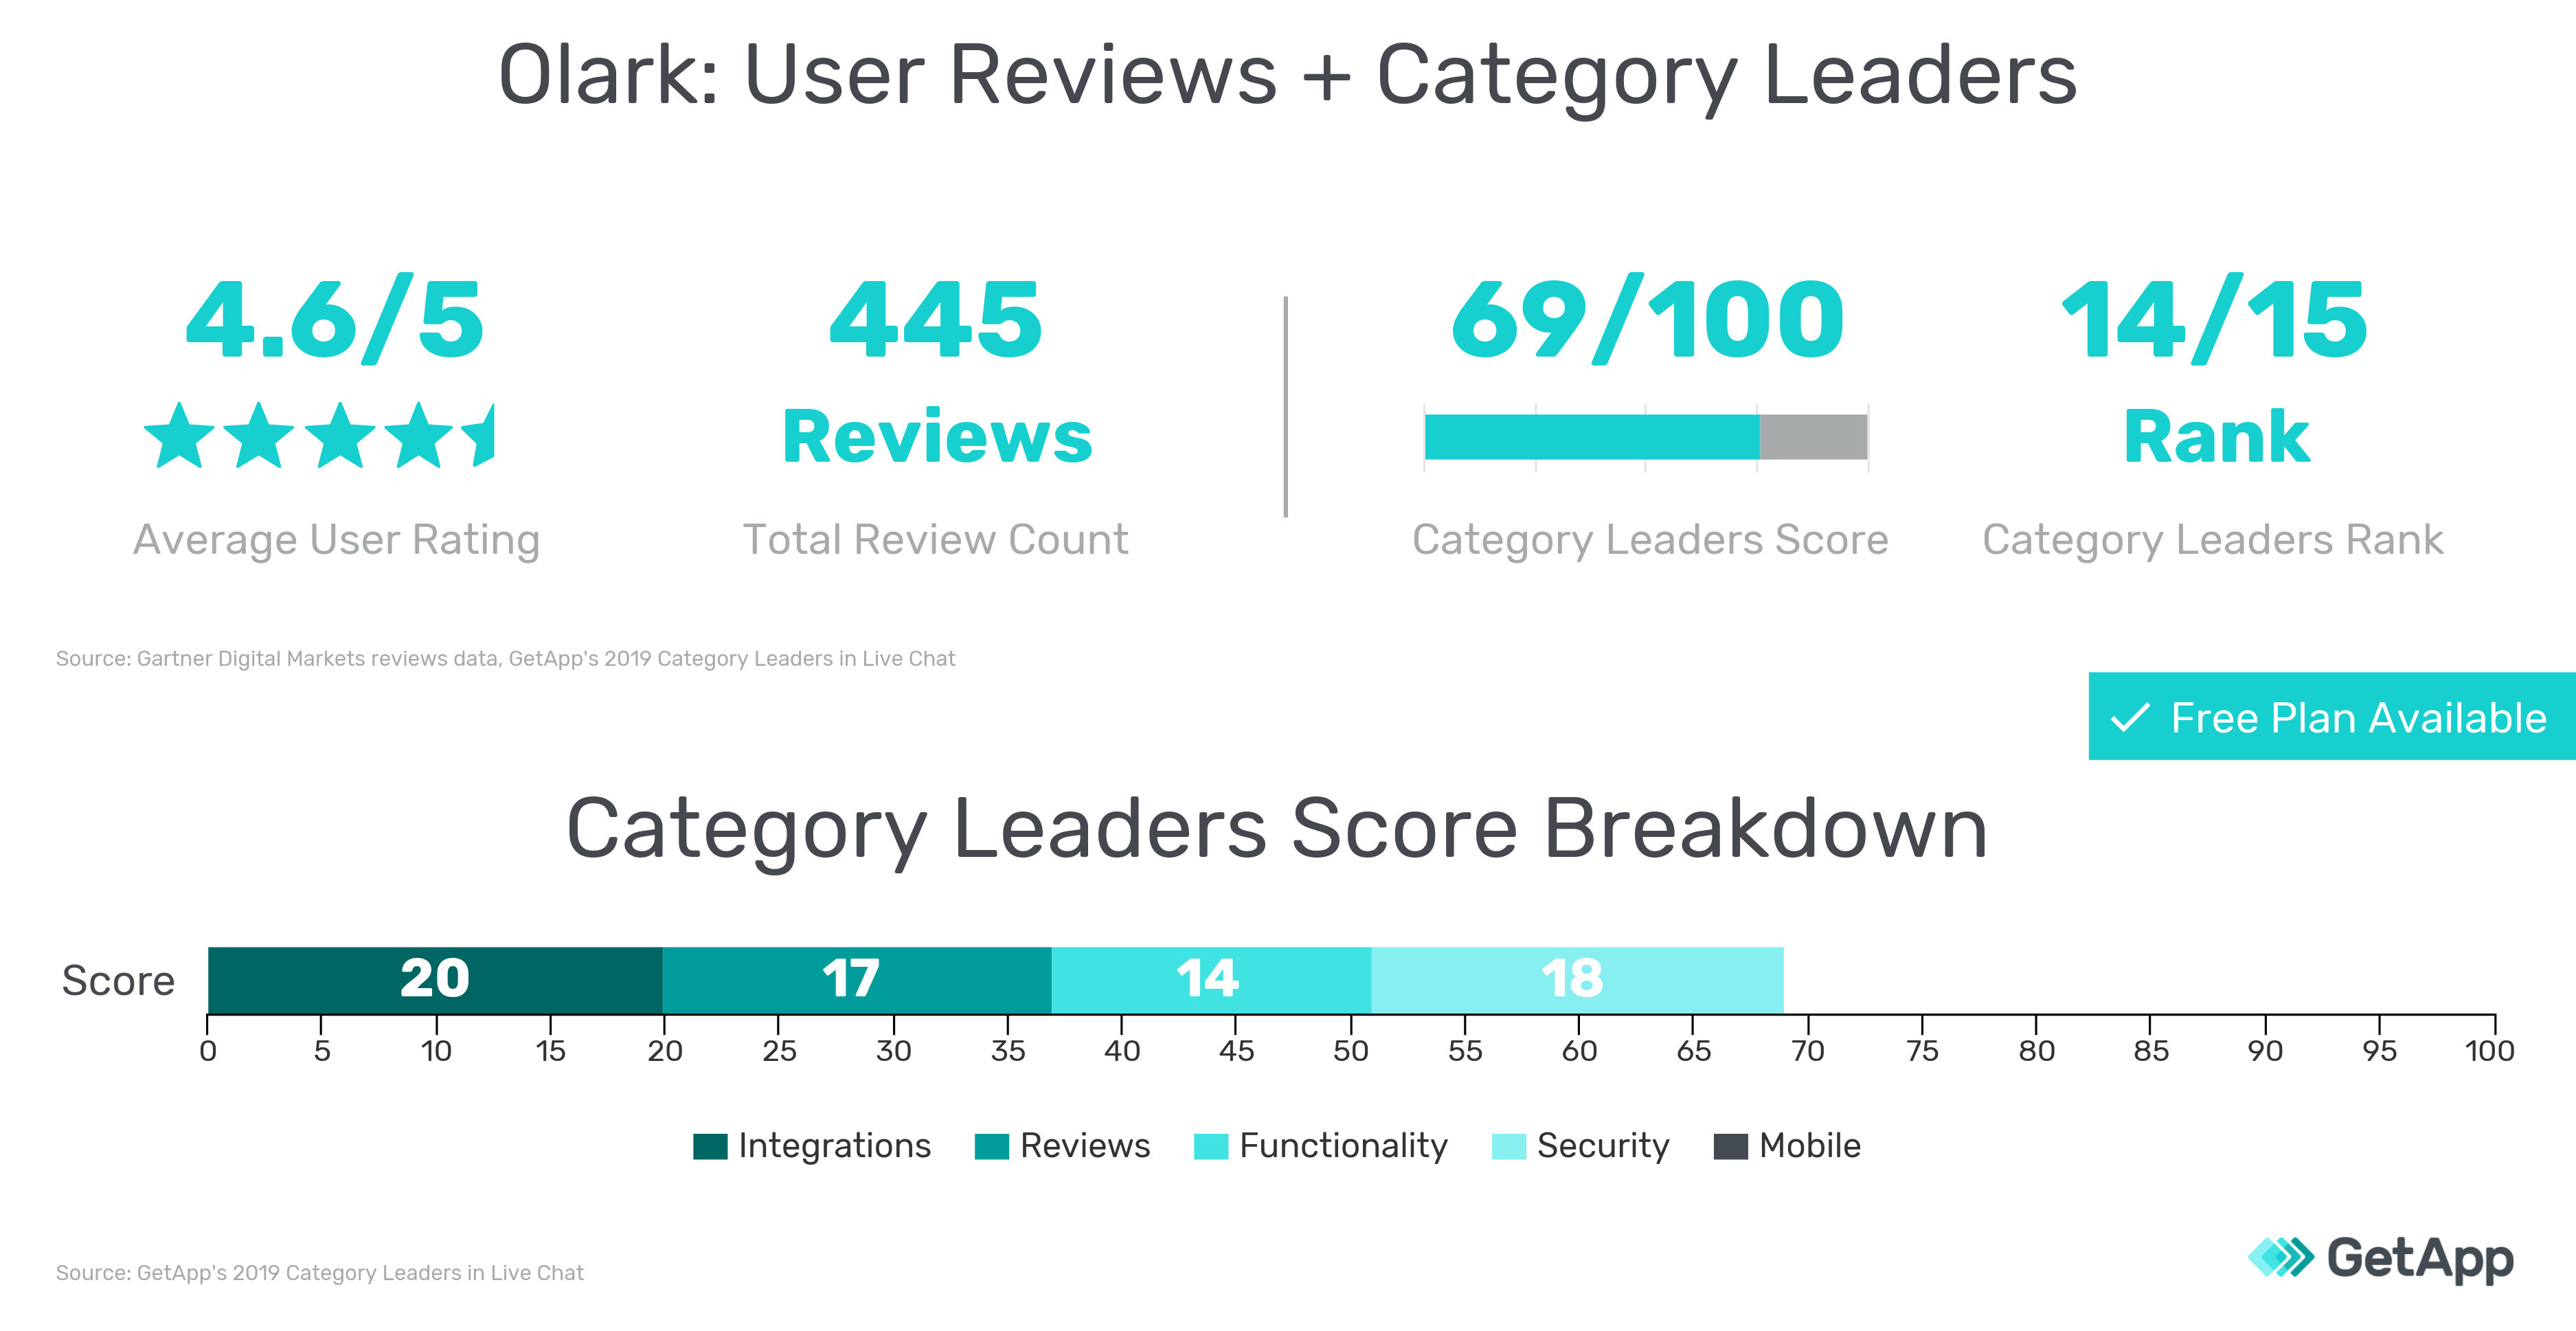 User reviews information and 2019 Category Leaders scores for Olark graphic